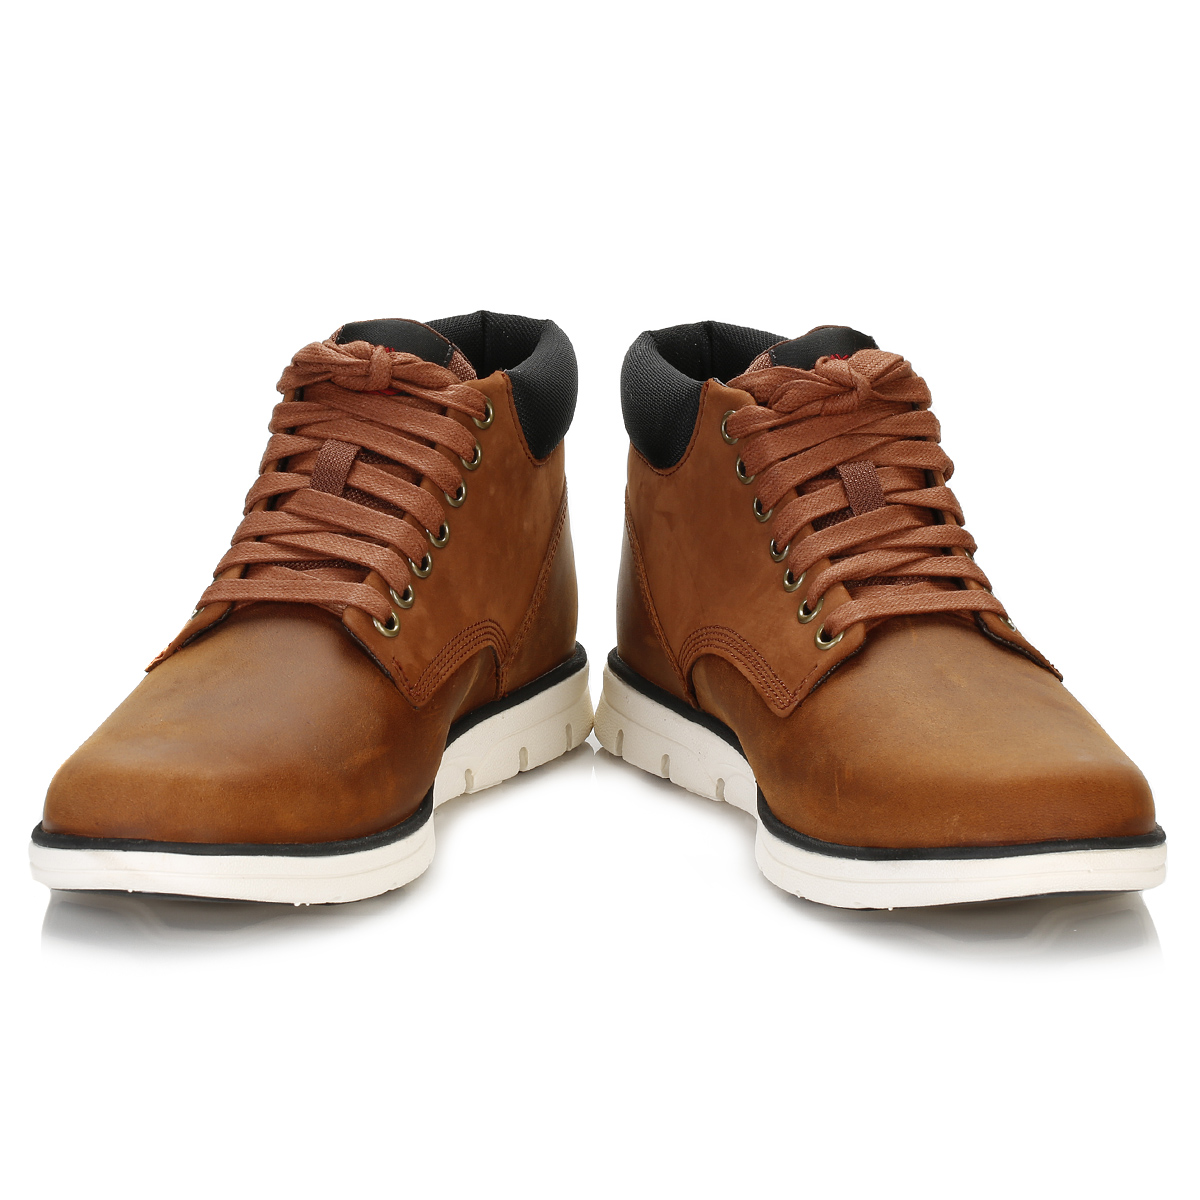 Details zu Timberland Mens Chukka Boots Red Brown Bradstreet Leather Lace Up Casual CA13EE